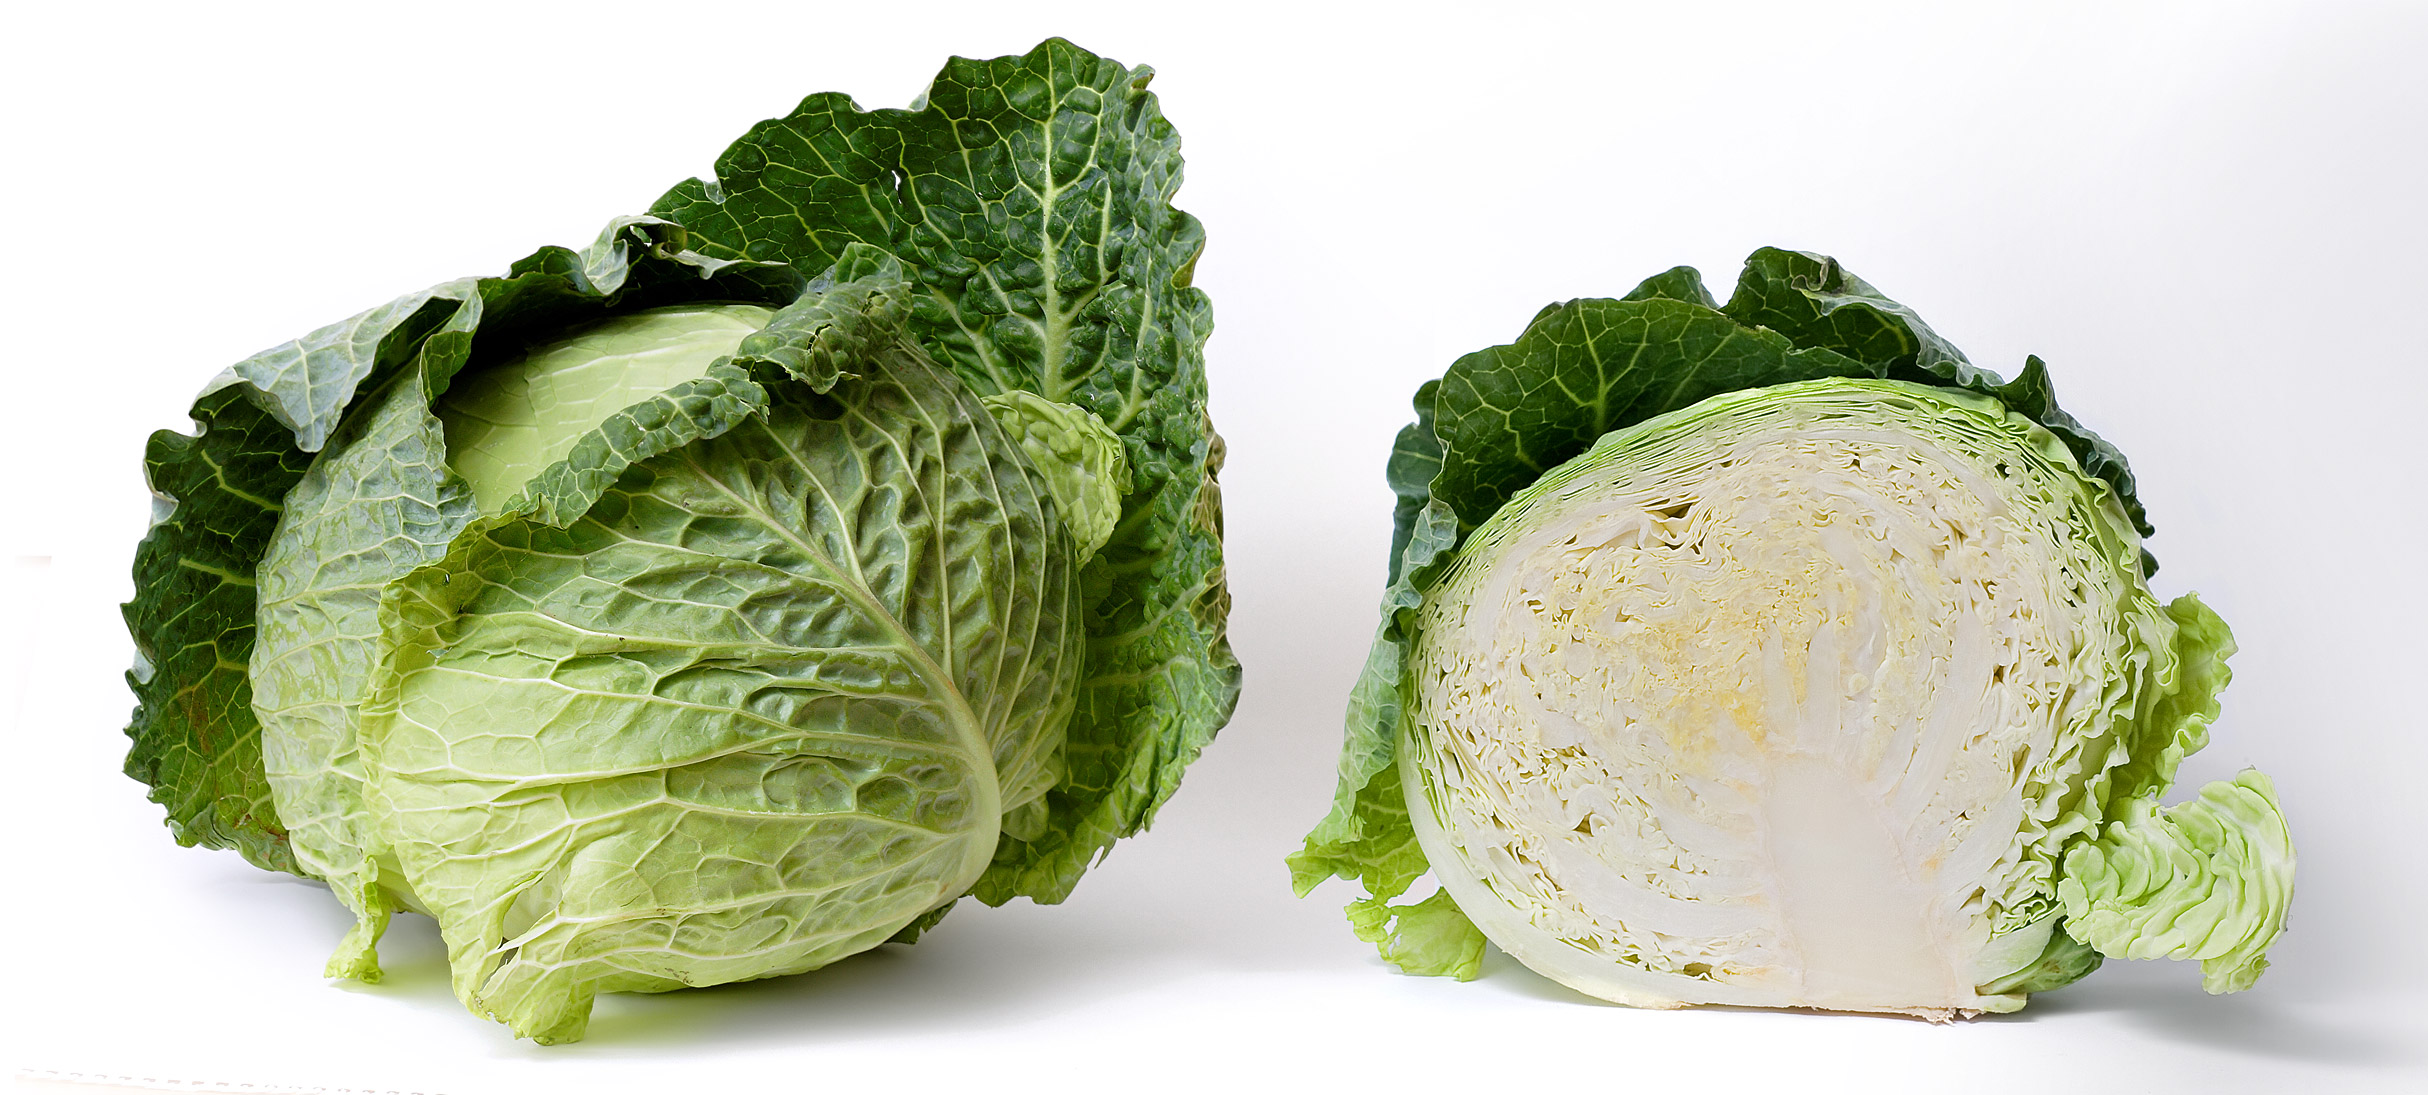 Cabbage Wikipedia